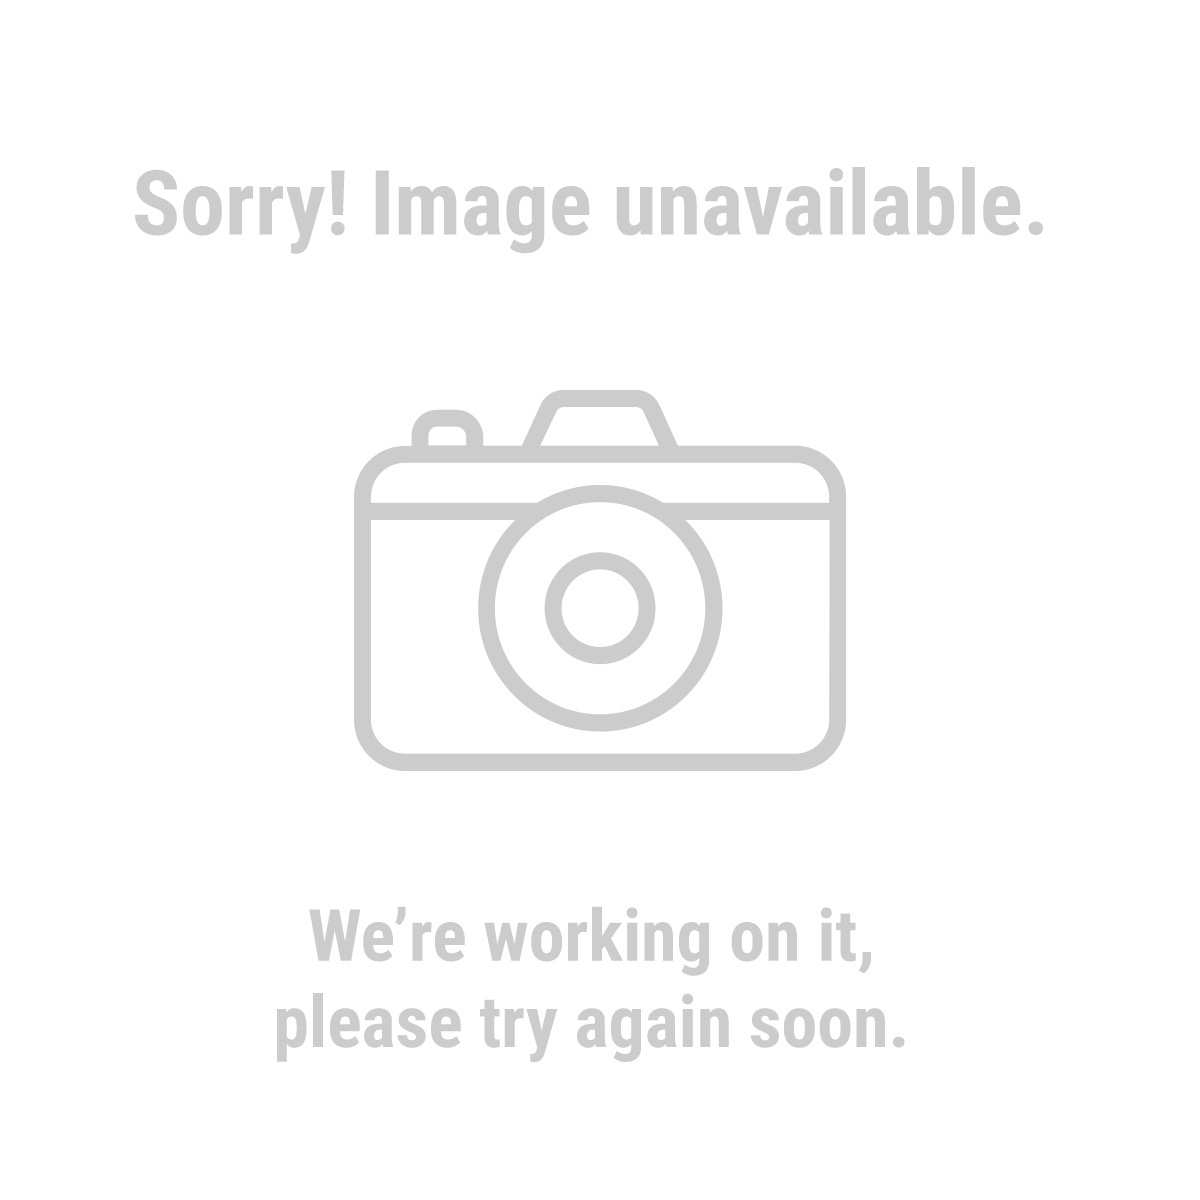 Chicago Electric Platinum 69924 6 in. Variable Speed Dual Action Polisher